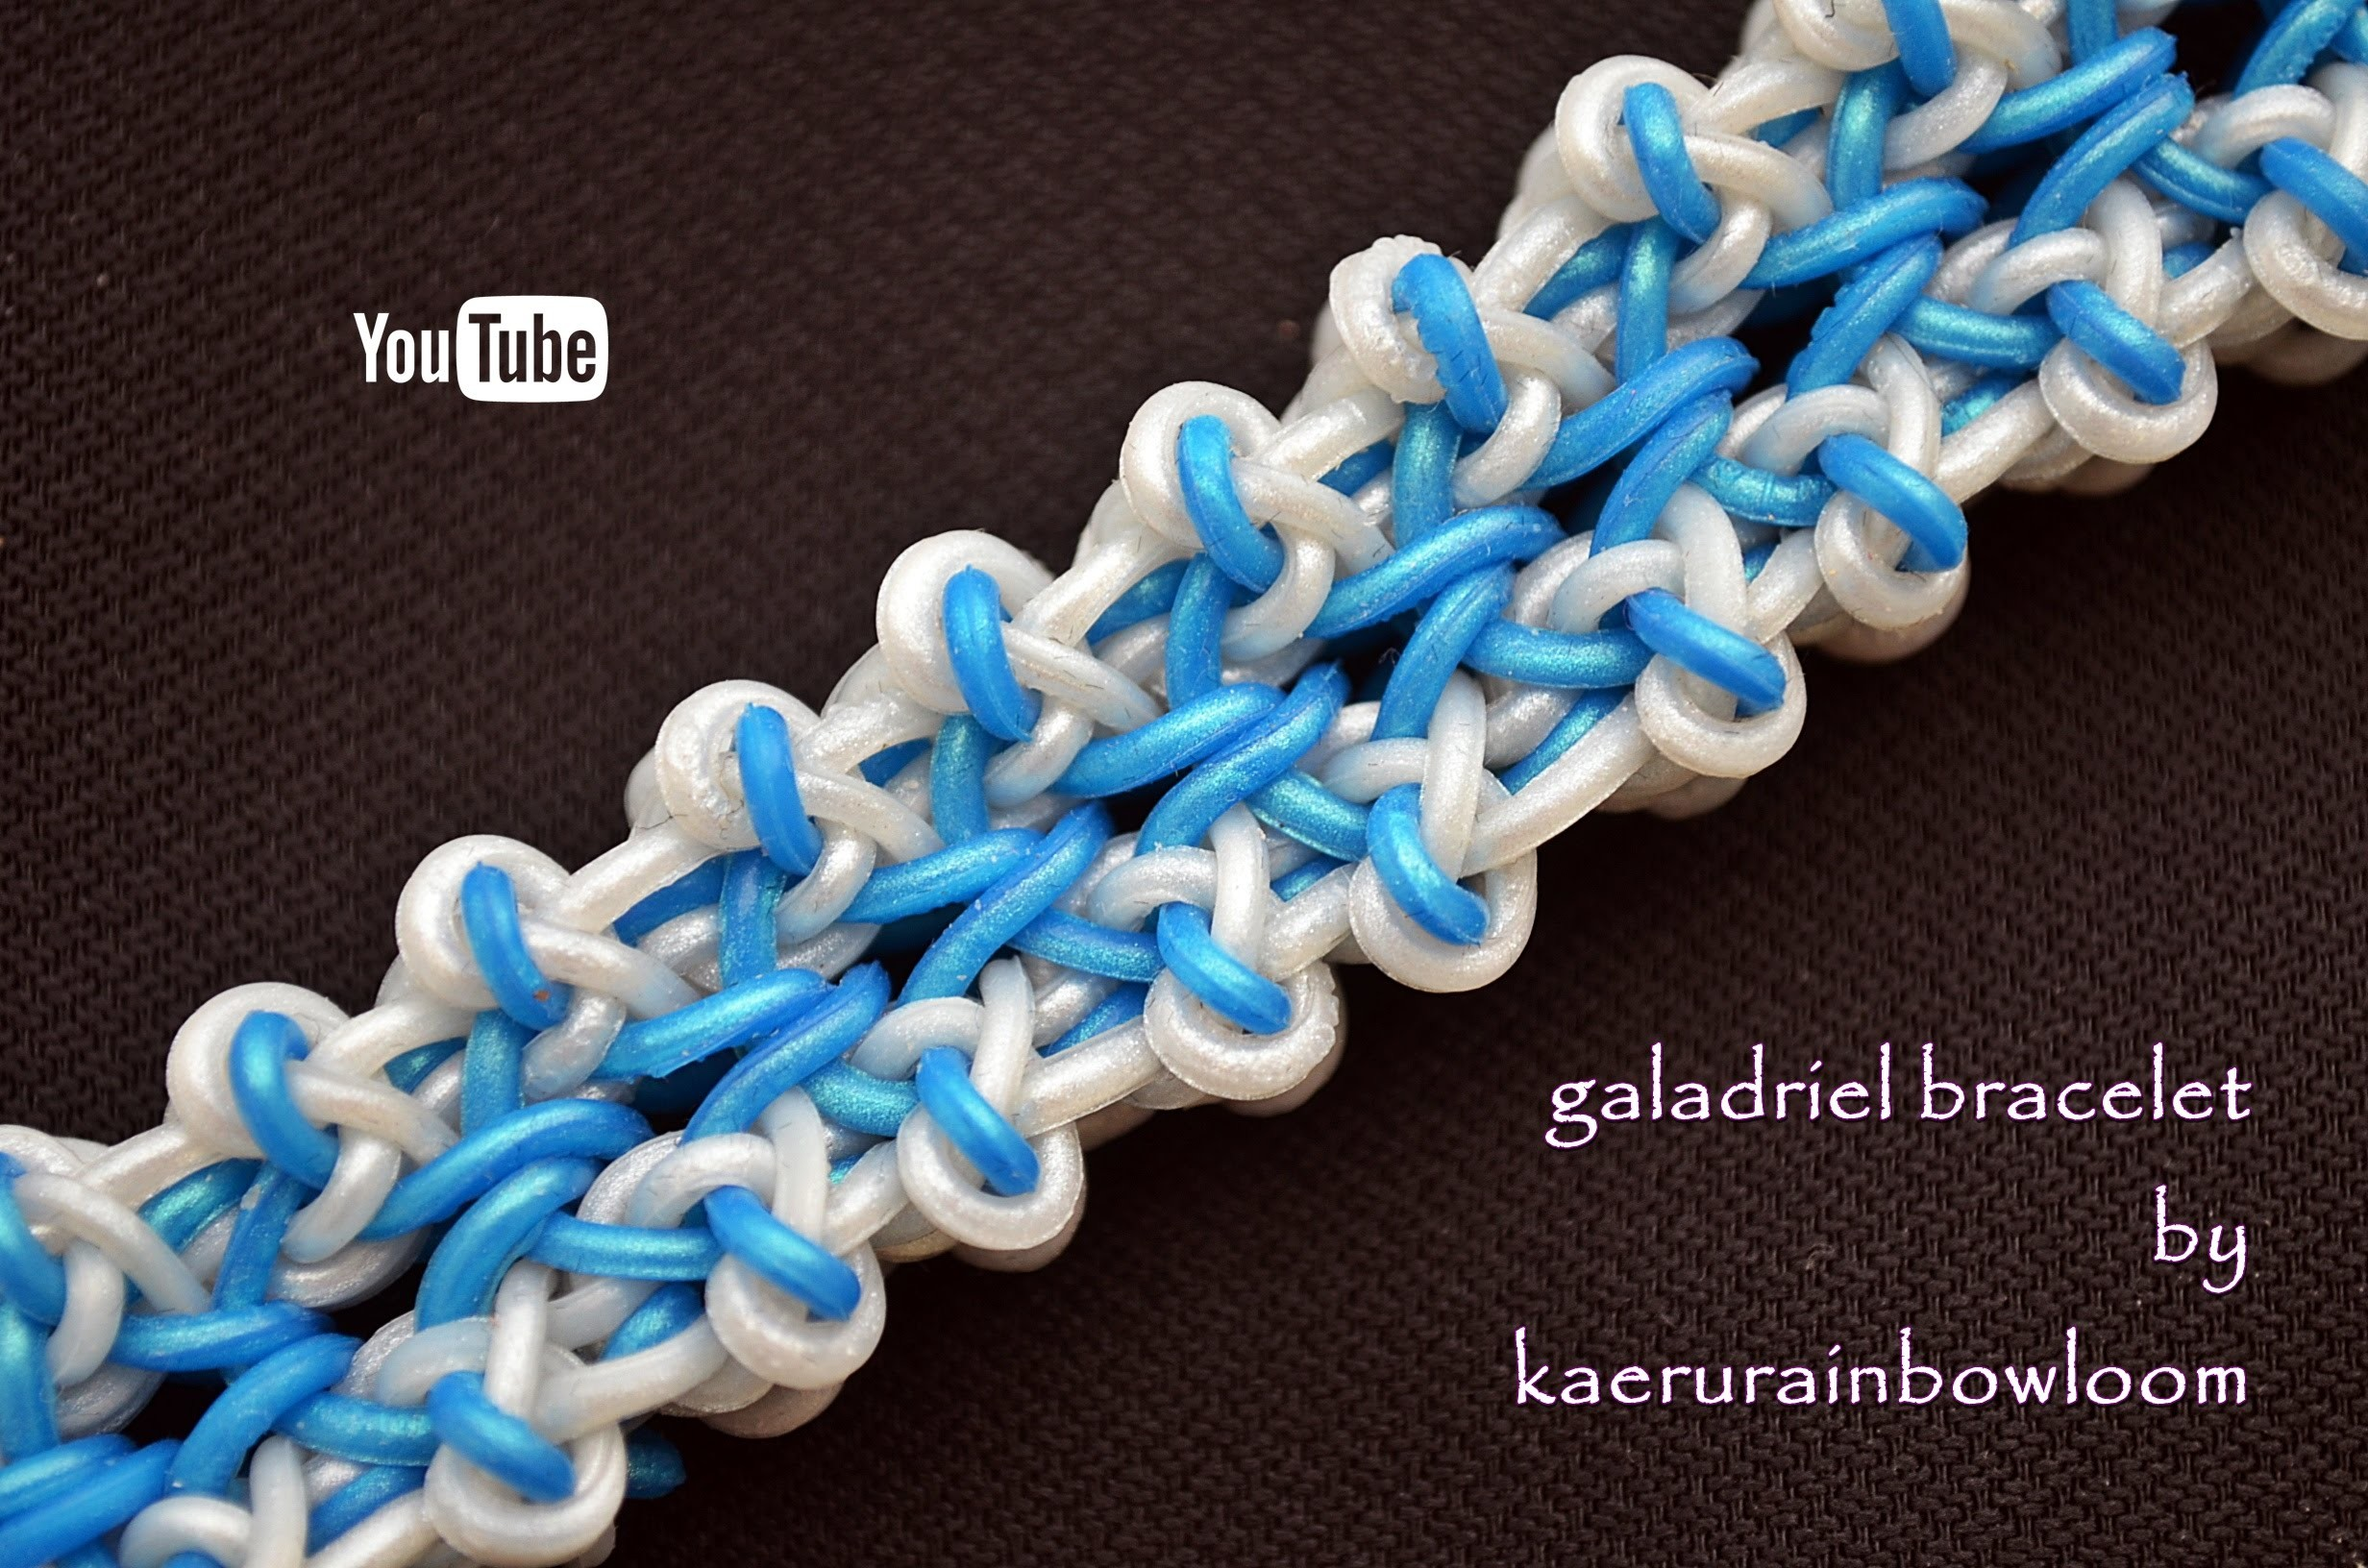 GALADRIEL BRACELET HOOK ONLY DESIGN TUTORIAL